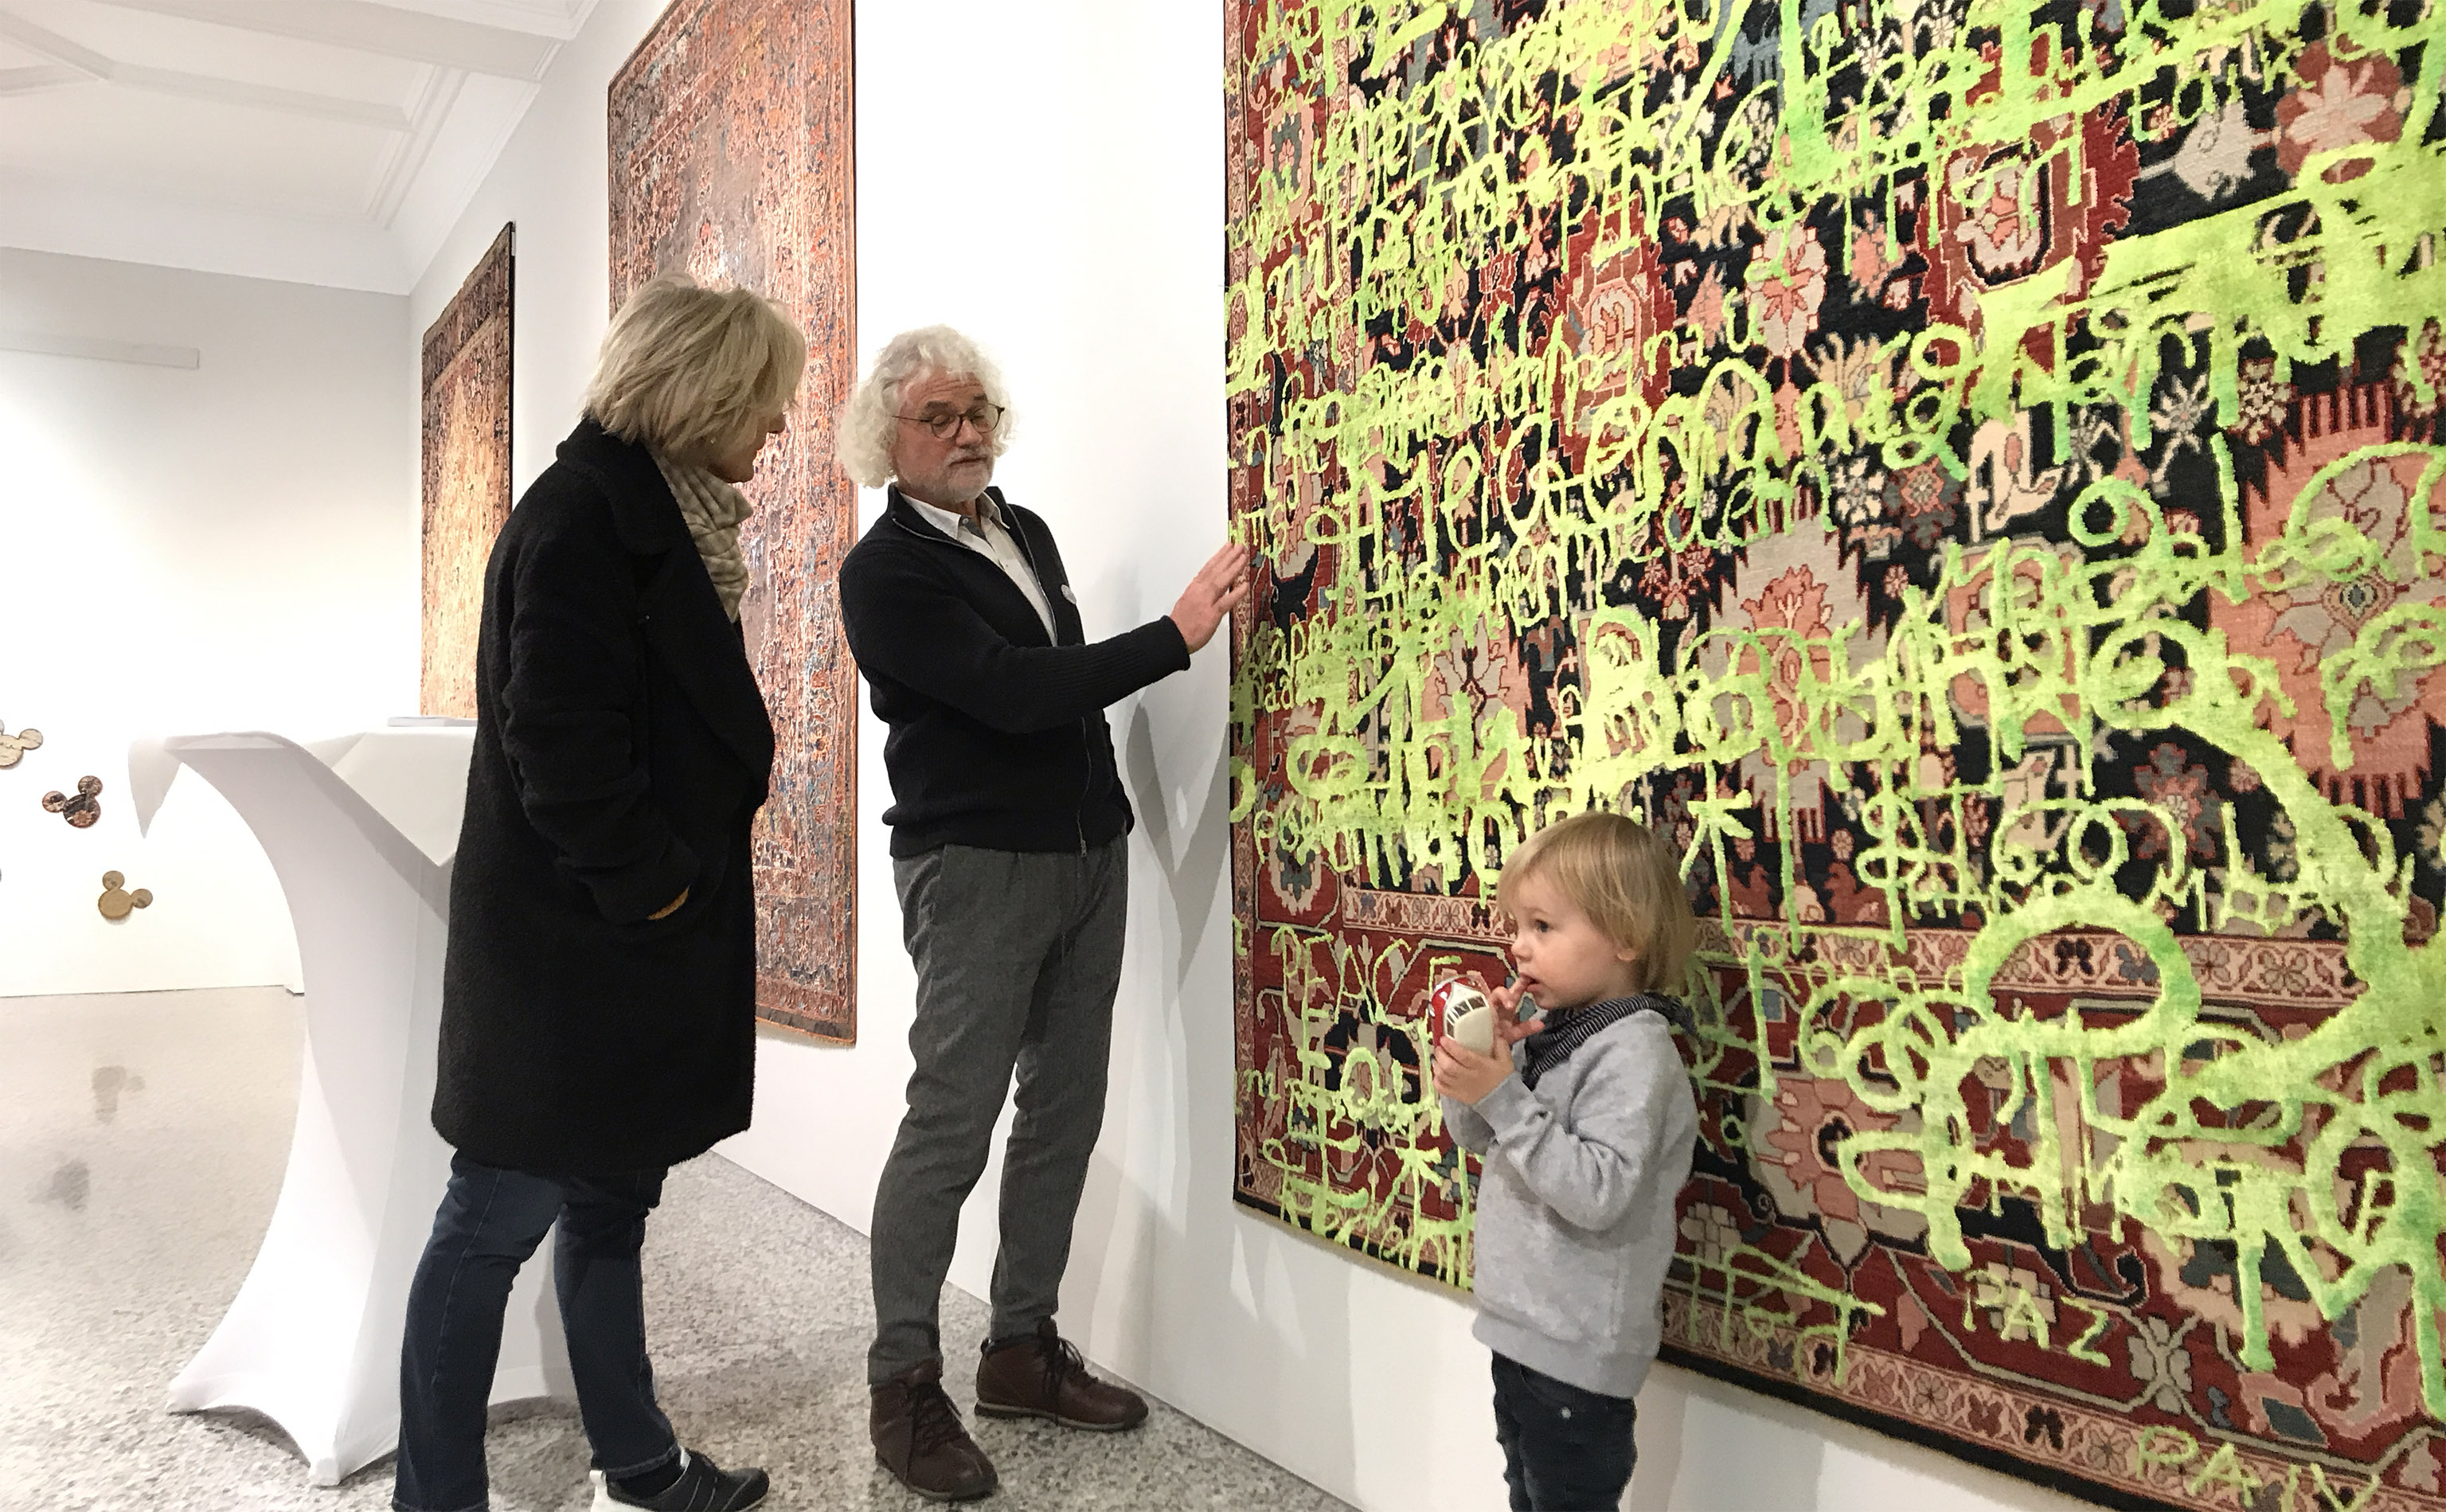 Frank Rüter (centre) of Nyhues - Contemporary Art Rugs shown explaining a carpet from Jan Kath to a prospective client during the 'Make Rugs Not War' vernissage at Jan Kath Köln on 15 January 2019. | Photograph by The Ruggist.